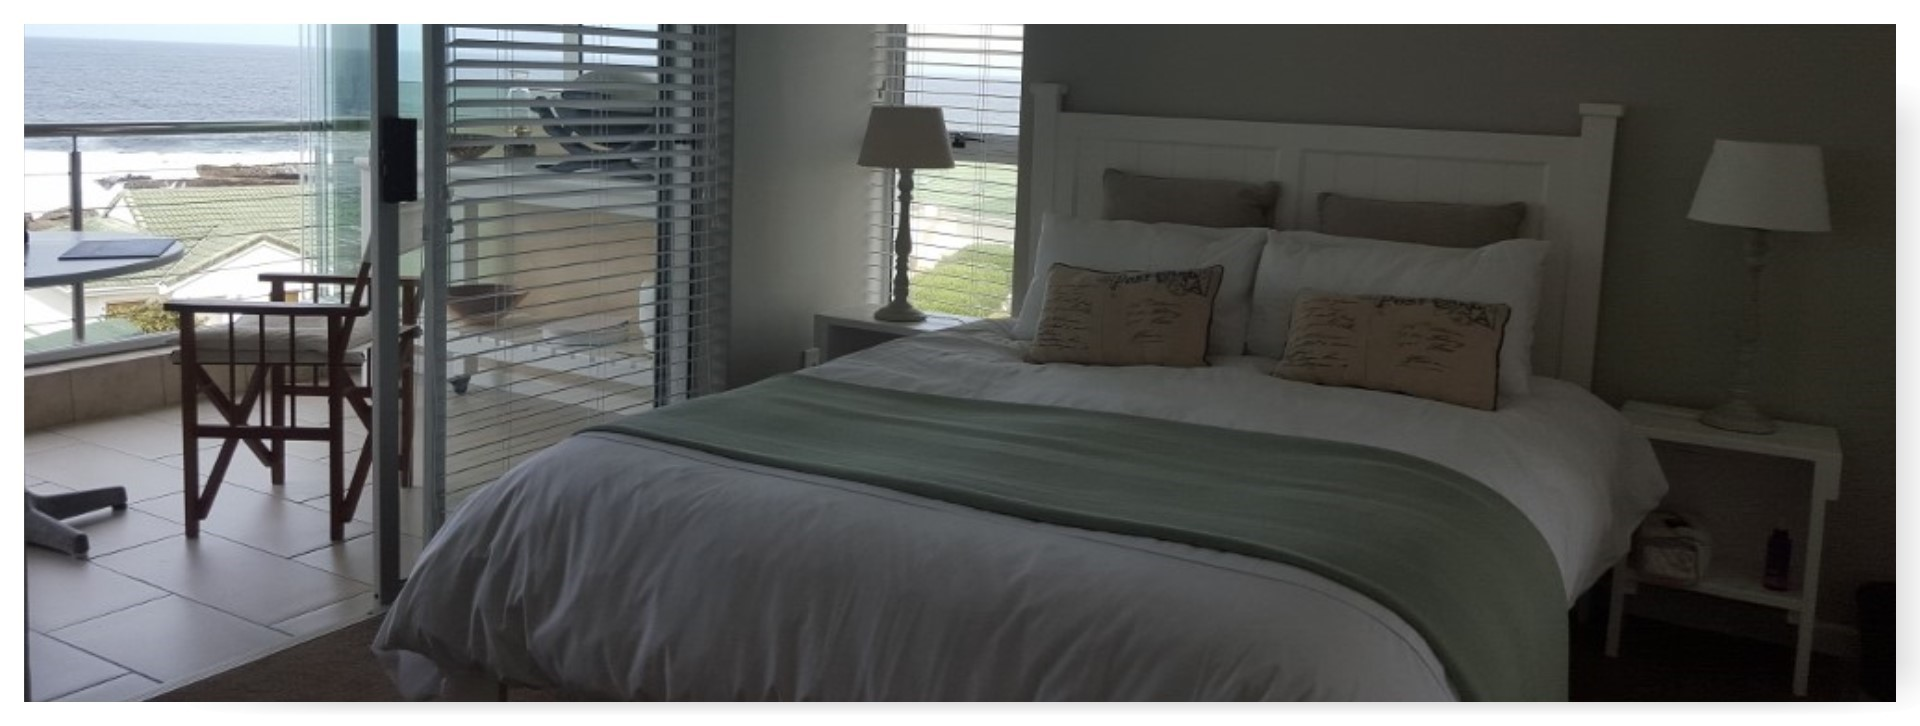 En suite double bedroom with view of the ocean</strong>